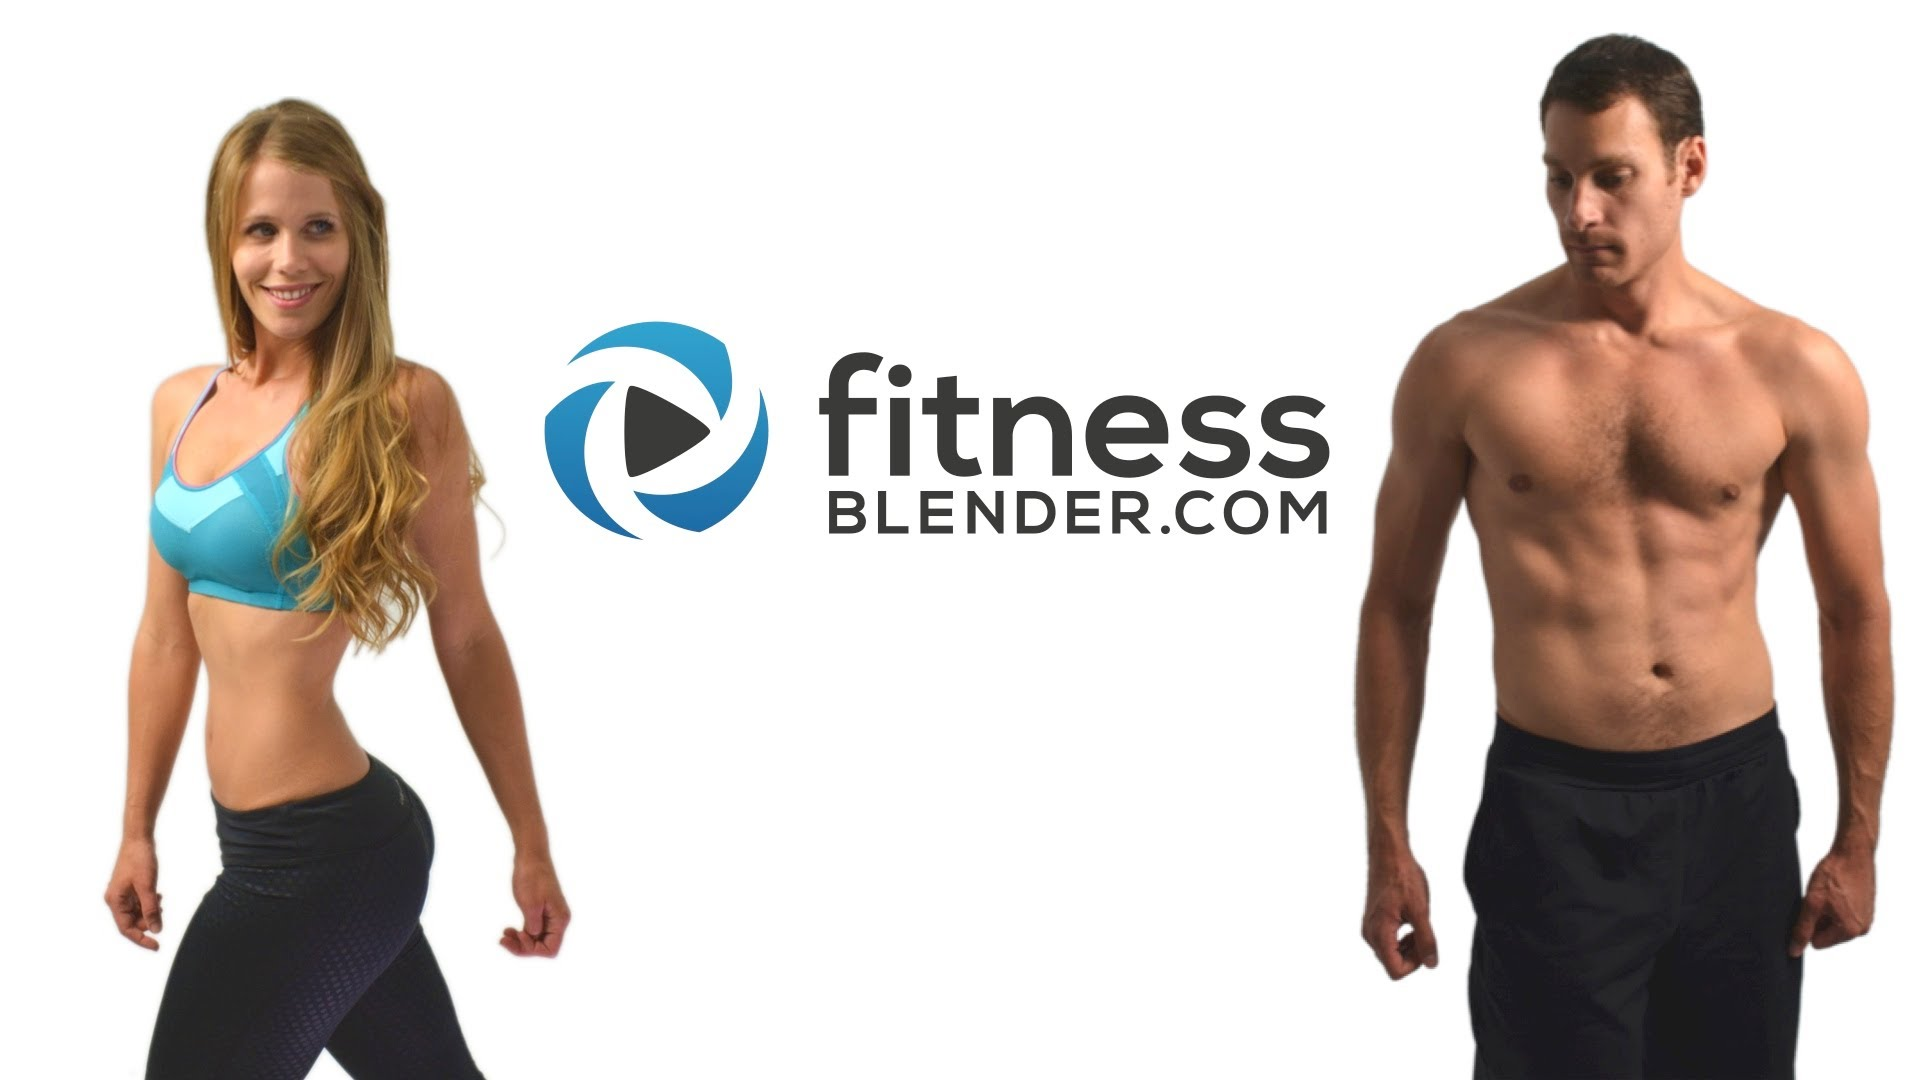 Fitness Blender The best FREE workout videos